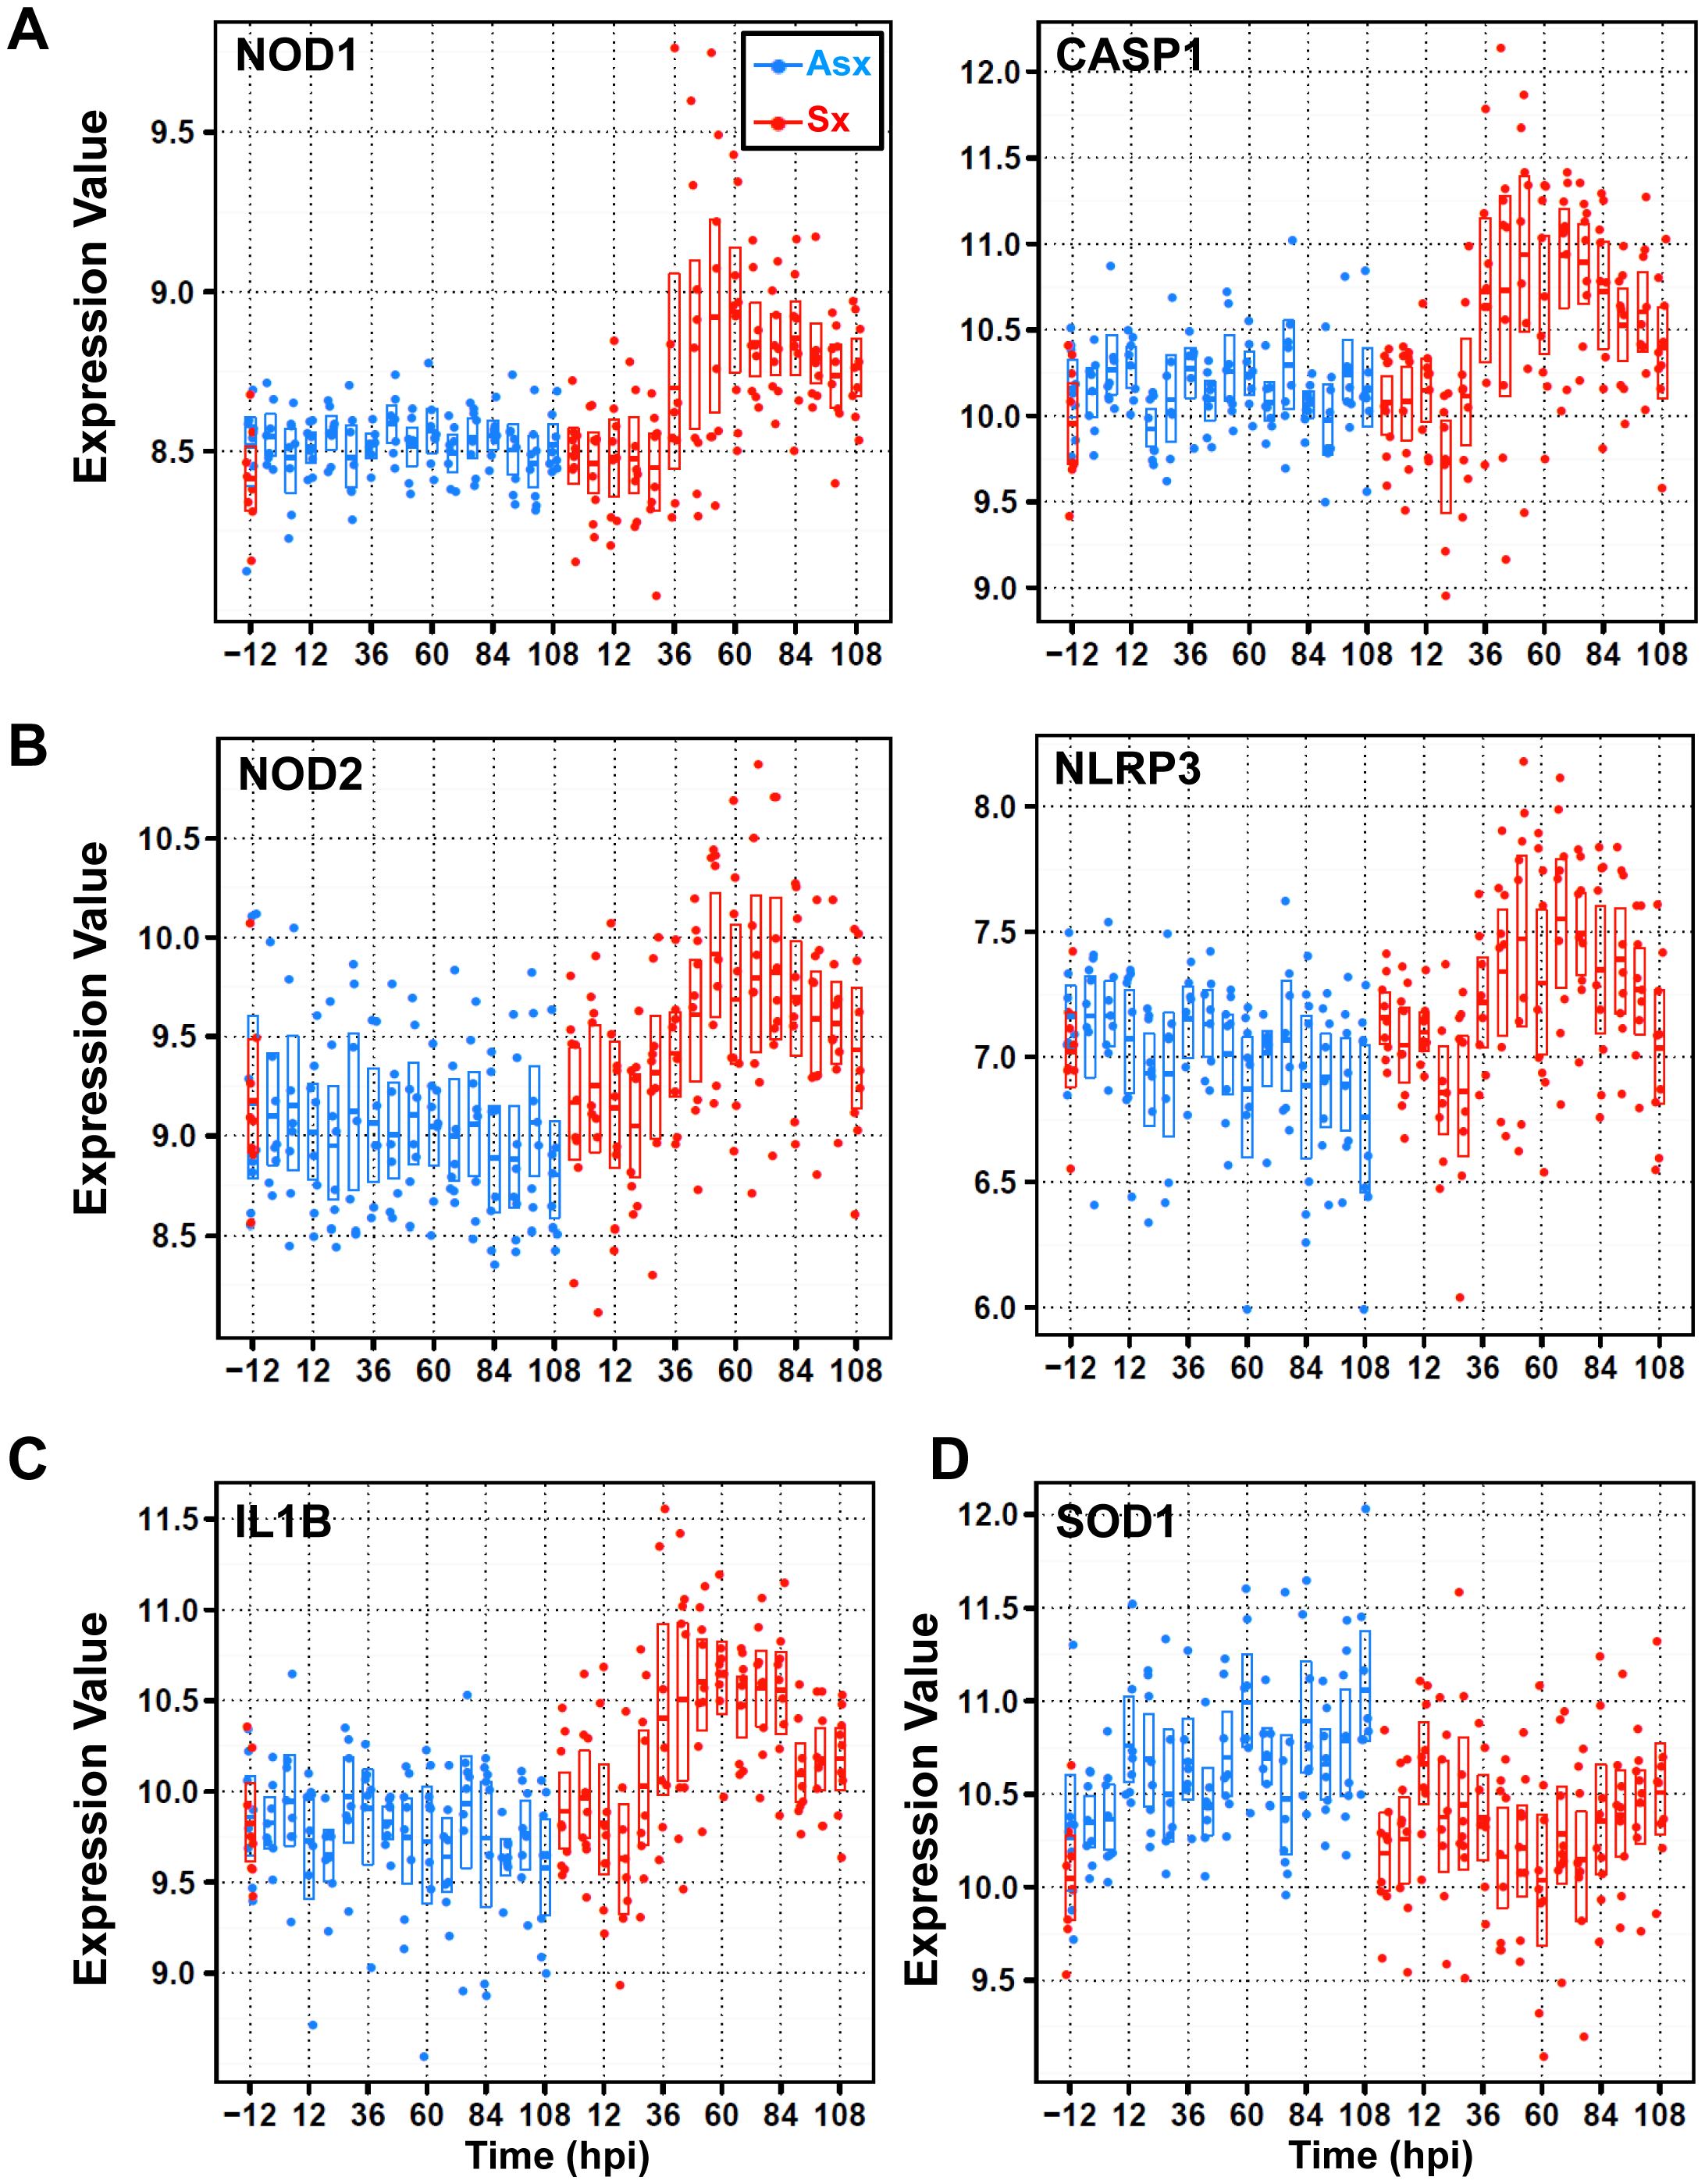 Divergent expression patterns of Nod/NACHT-LRR (NLRs) family of genes from cluster 2 and cluster 3 with contrasting expression of anti-oxidant/stress genes SOD1 and STK25 (or SOK1).